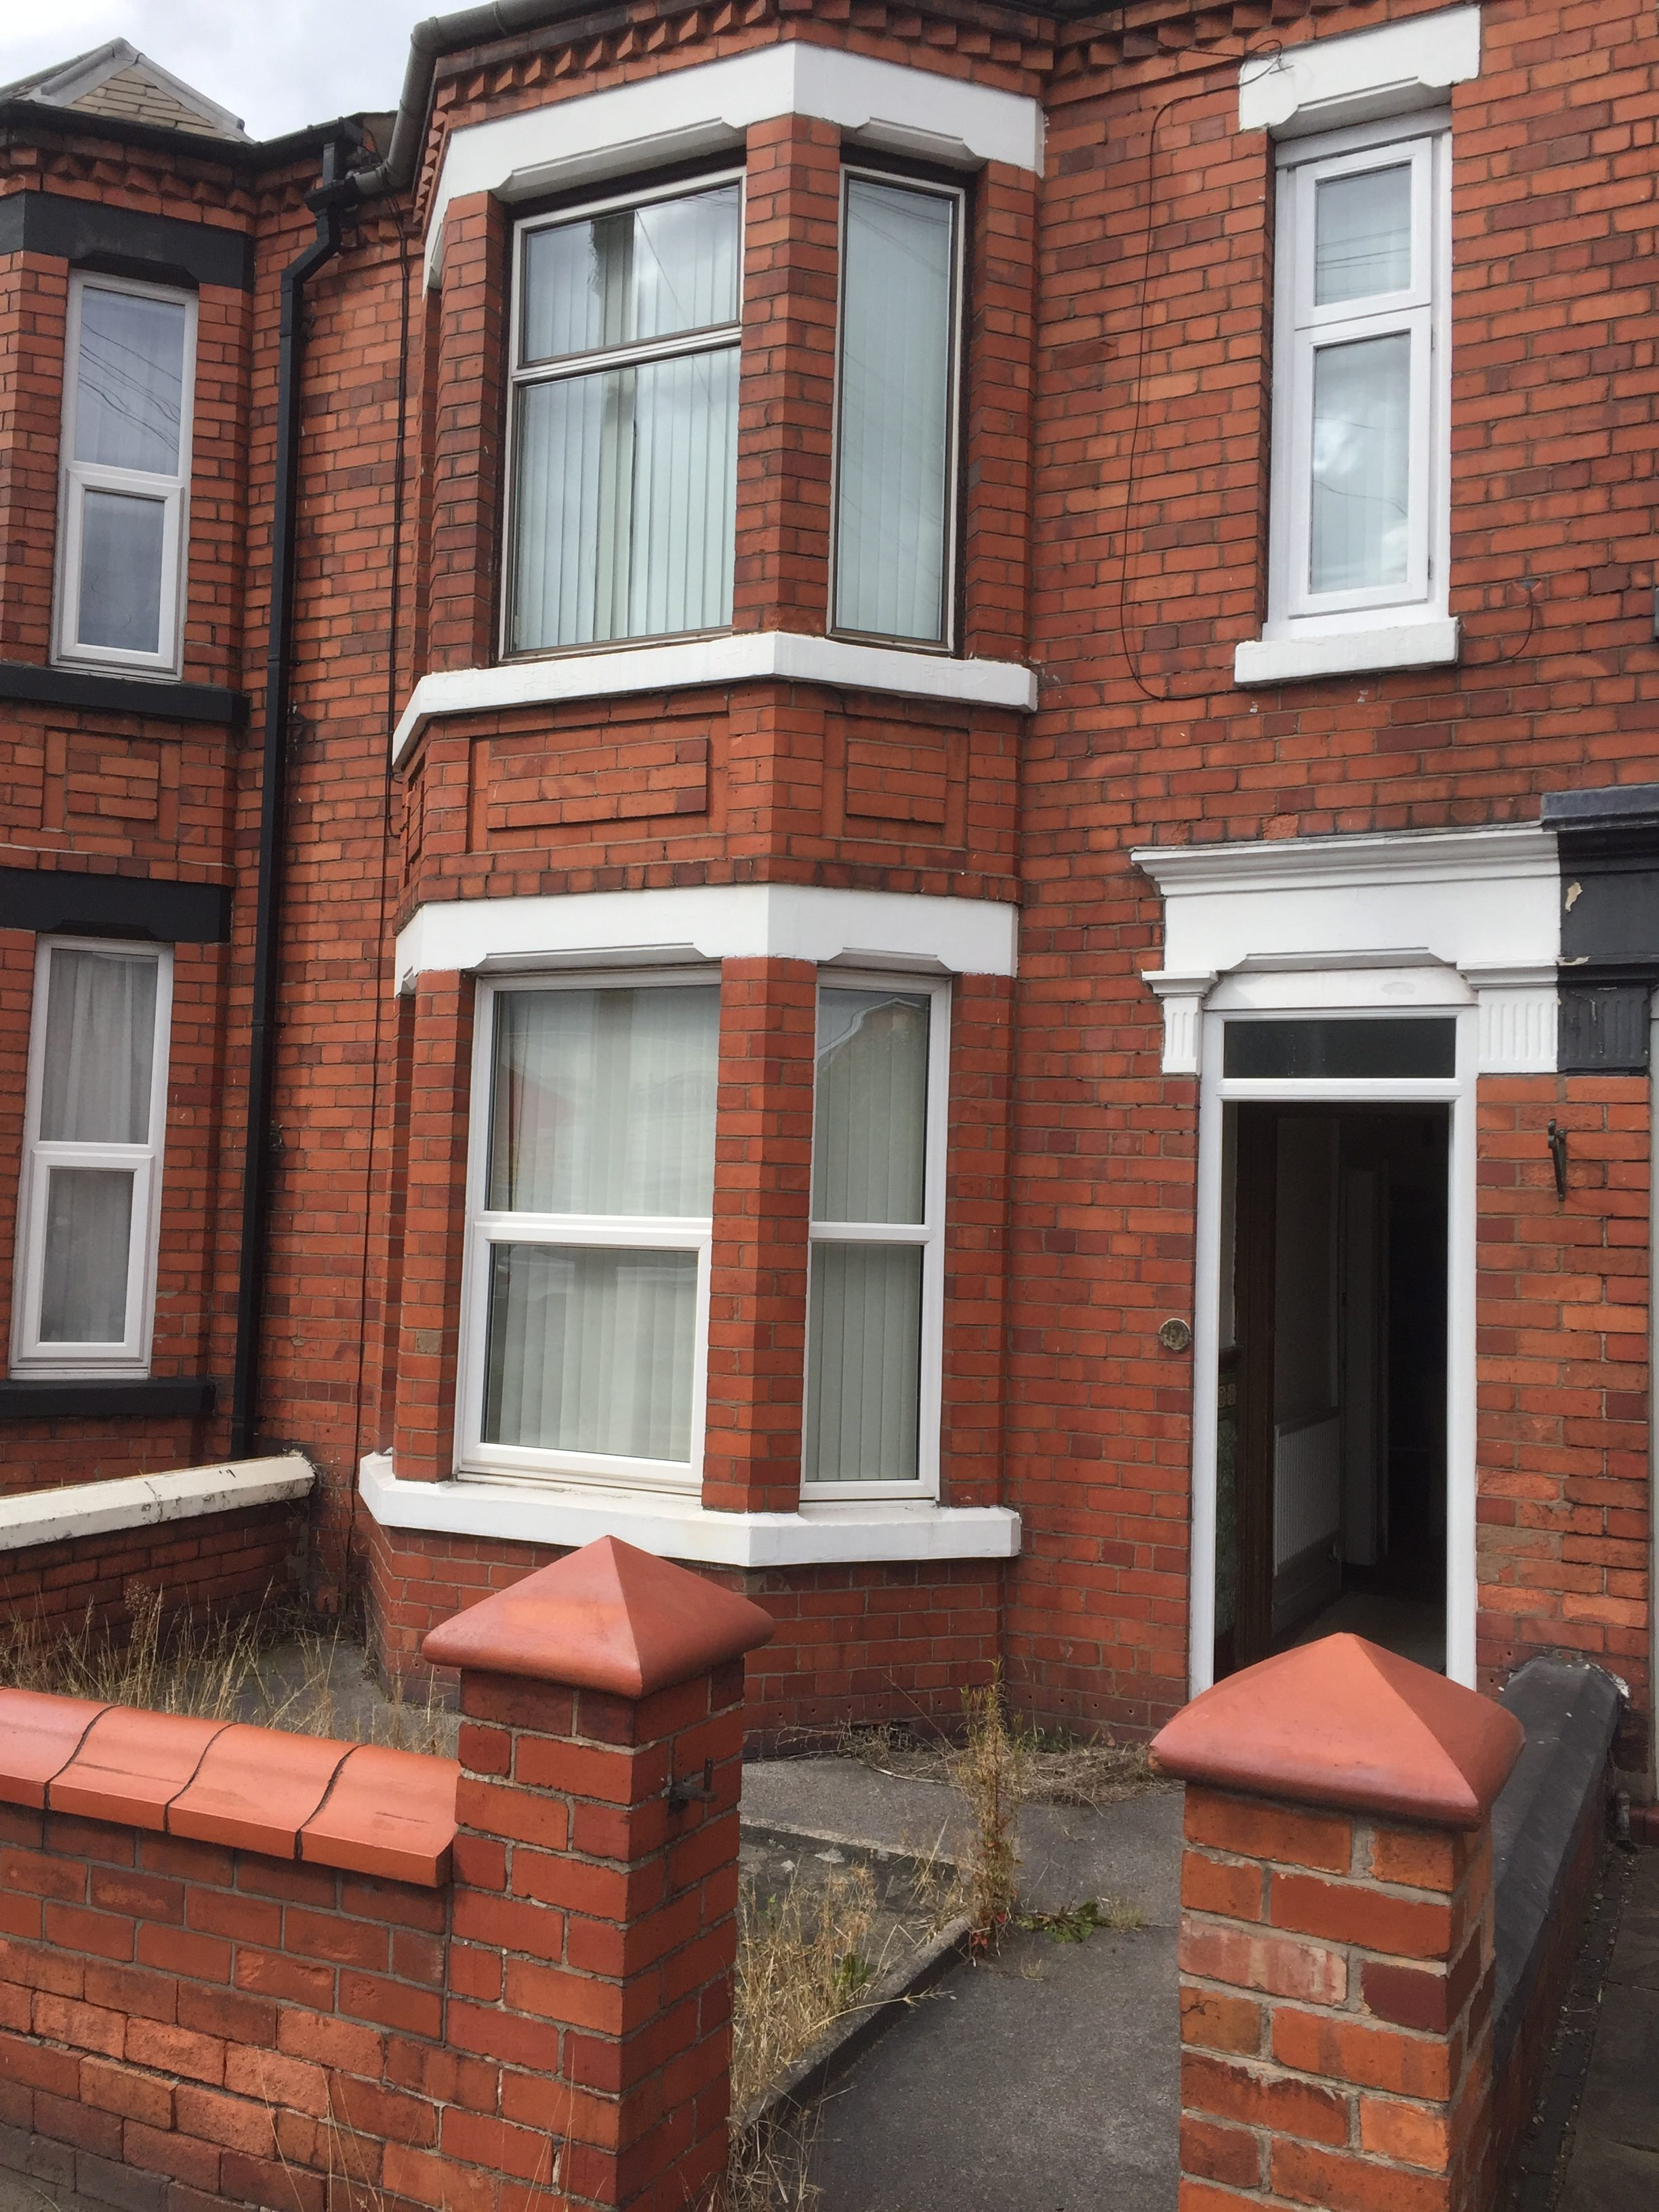 4/5 Bed HMO – Hungerford Road